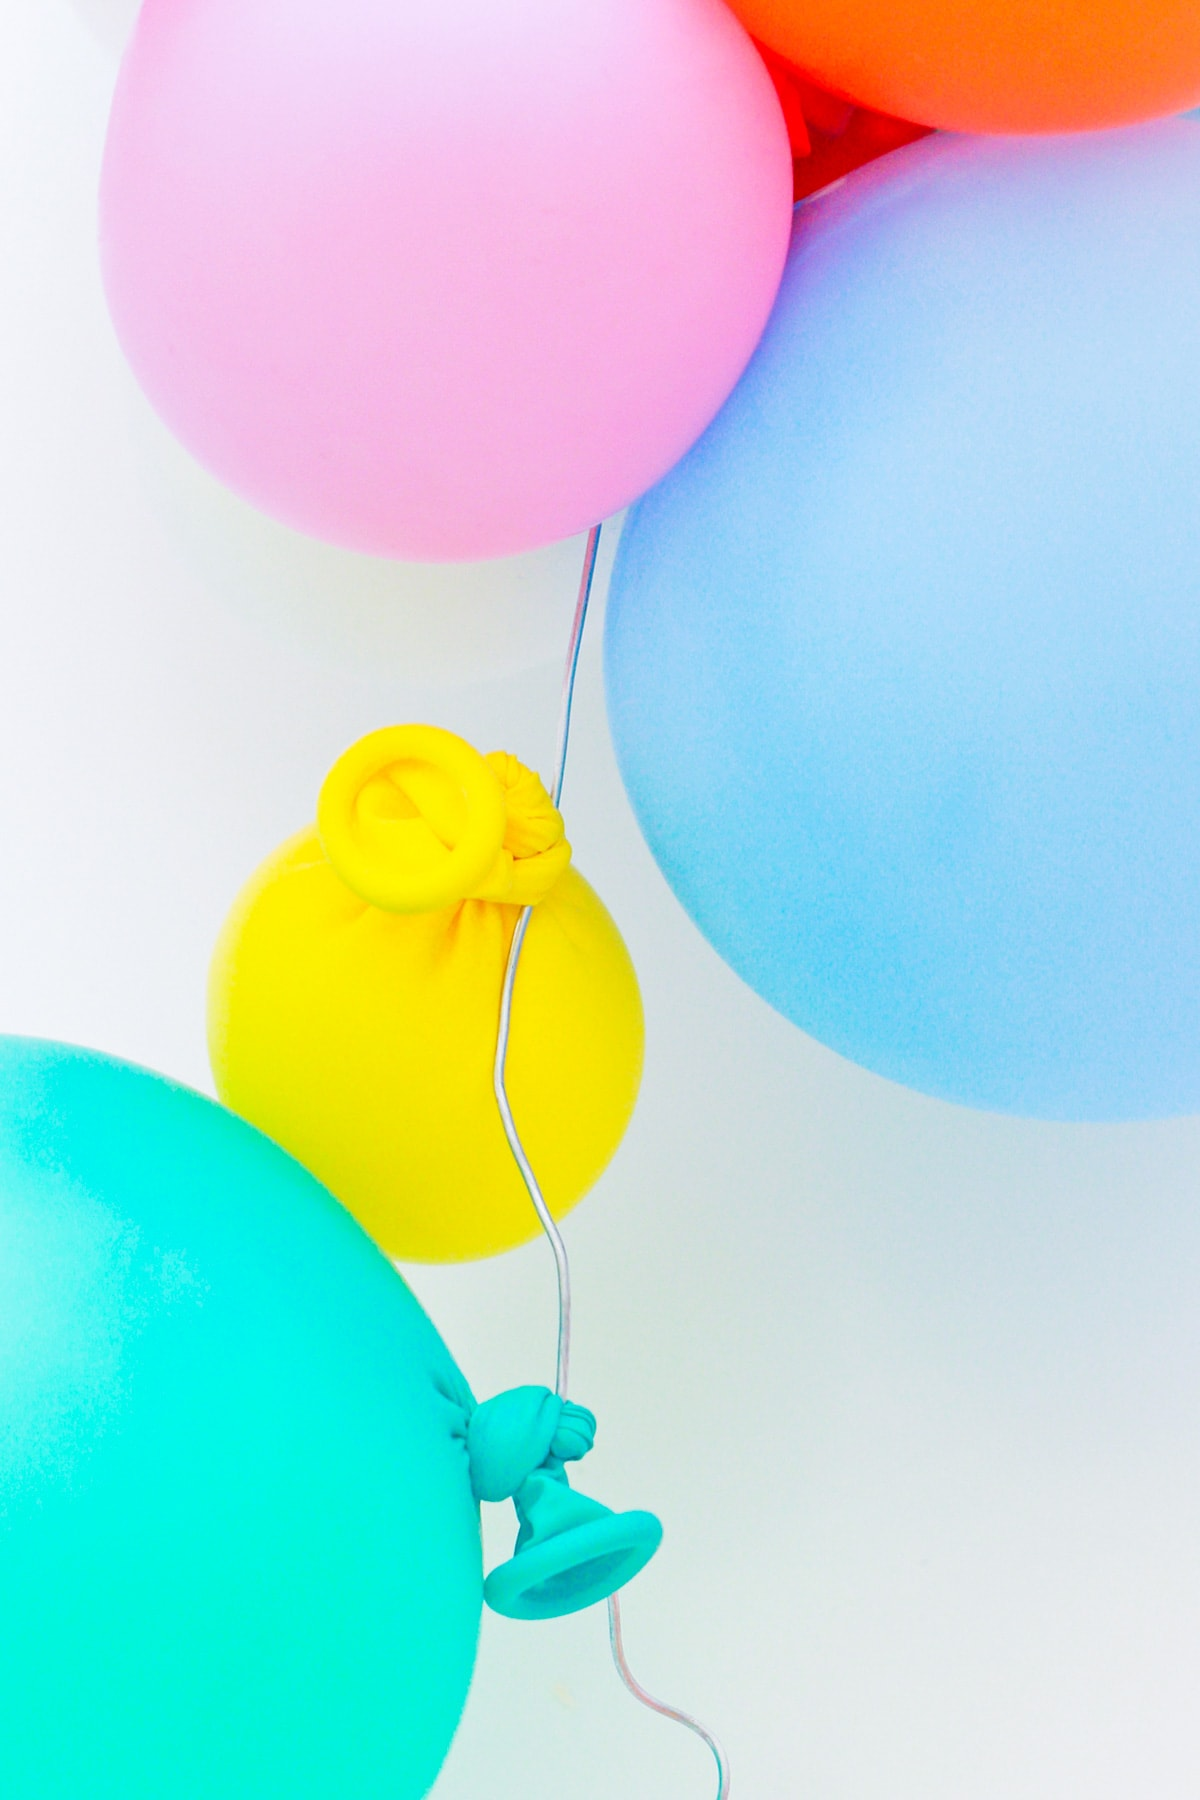 Step 4 - DIY Balloon Garland Cake Topper by top Houston lifestyle Blogger Ashley Rose of Sugar & Cloth - DIY DECOR #DIY #decor #balloon #balloongarland #party #celebrate #birthday #garland #diydecor